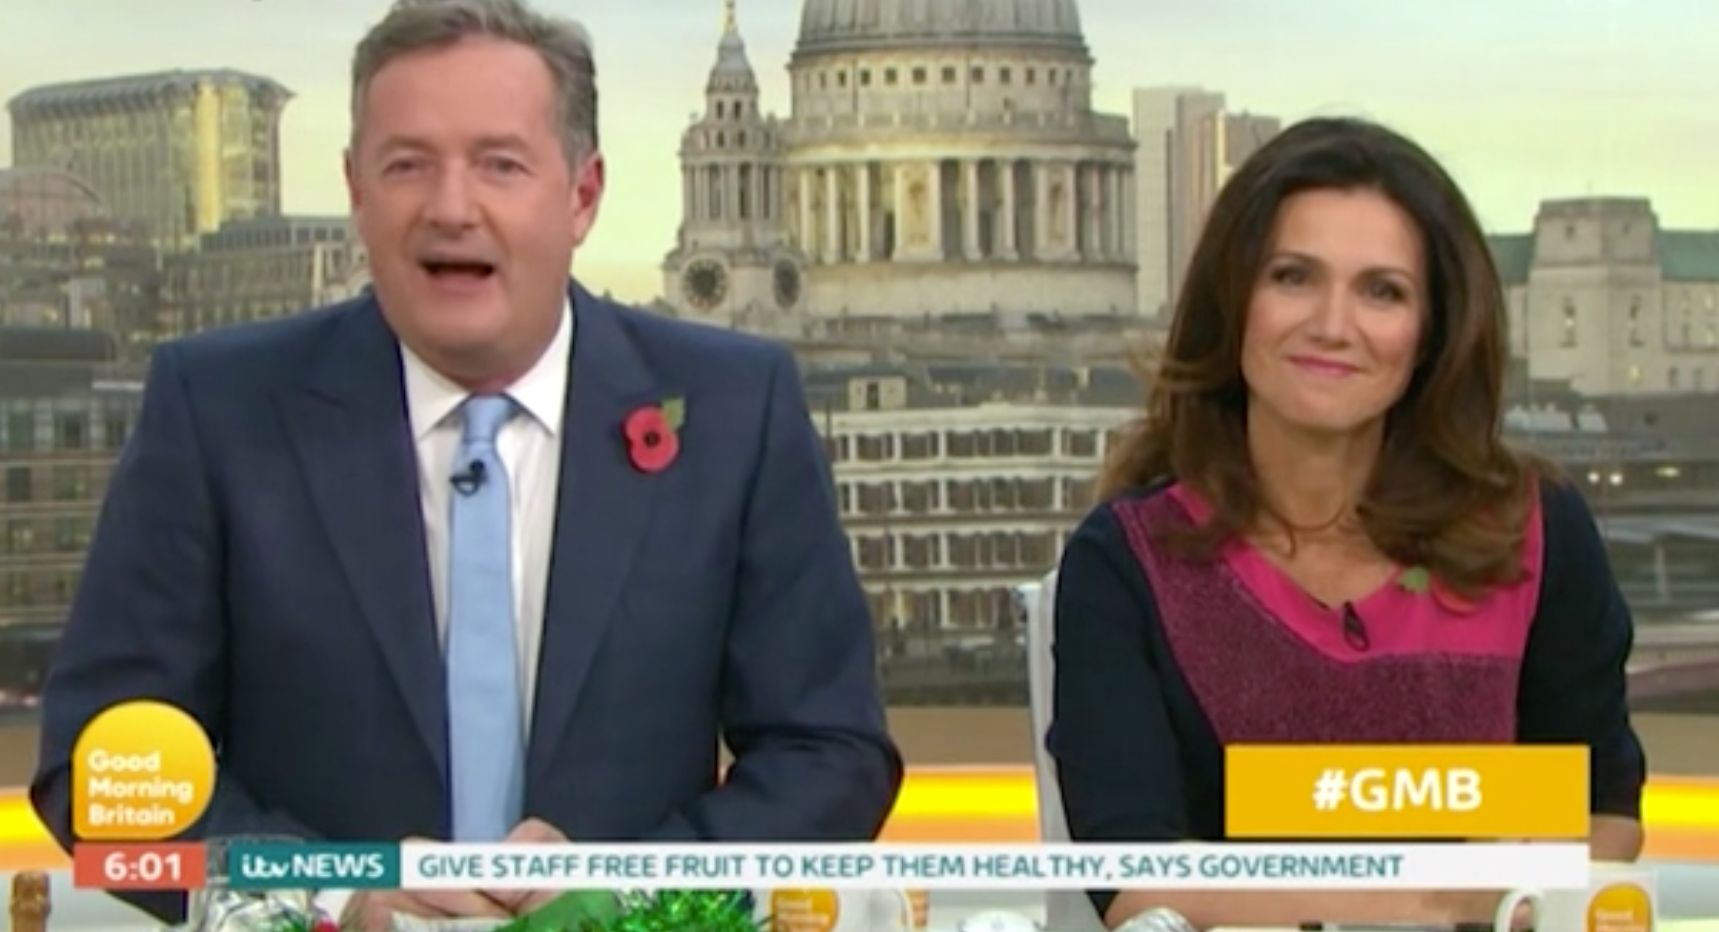 Piers Morgan Teases 'GMB' Co-Host Susanna Reid After She Goes Public With Steve Parish